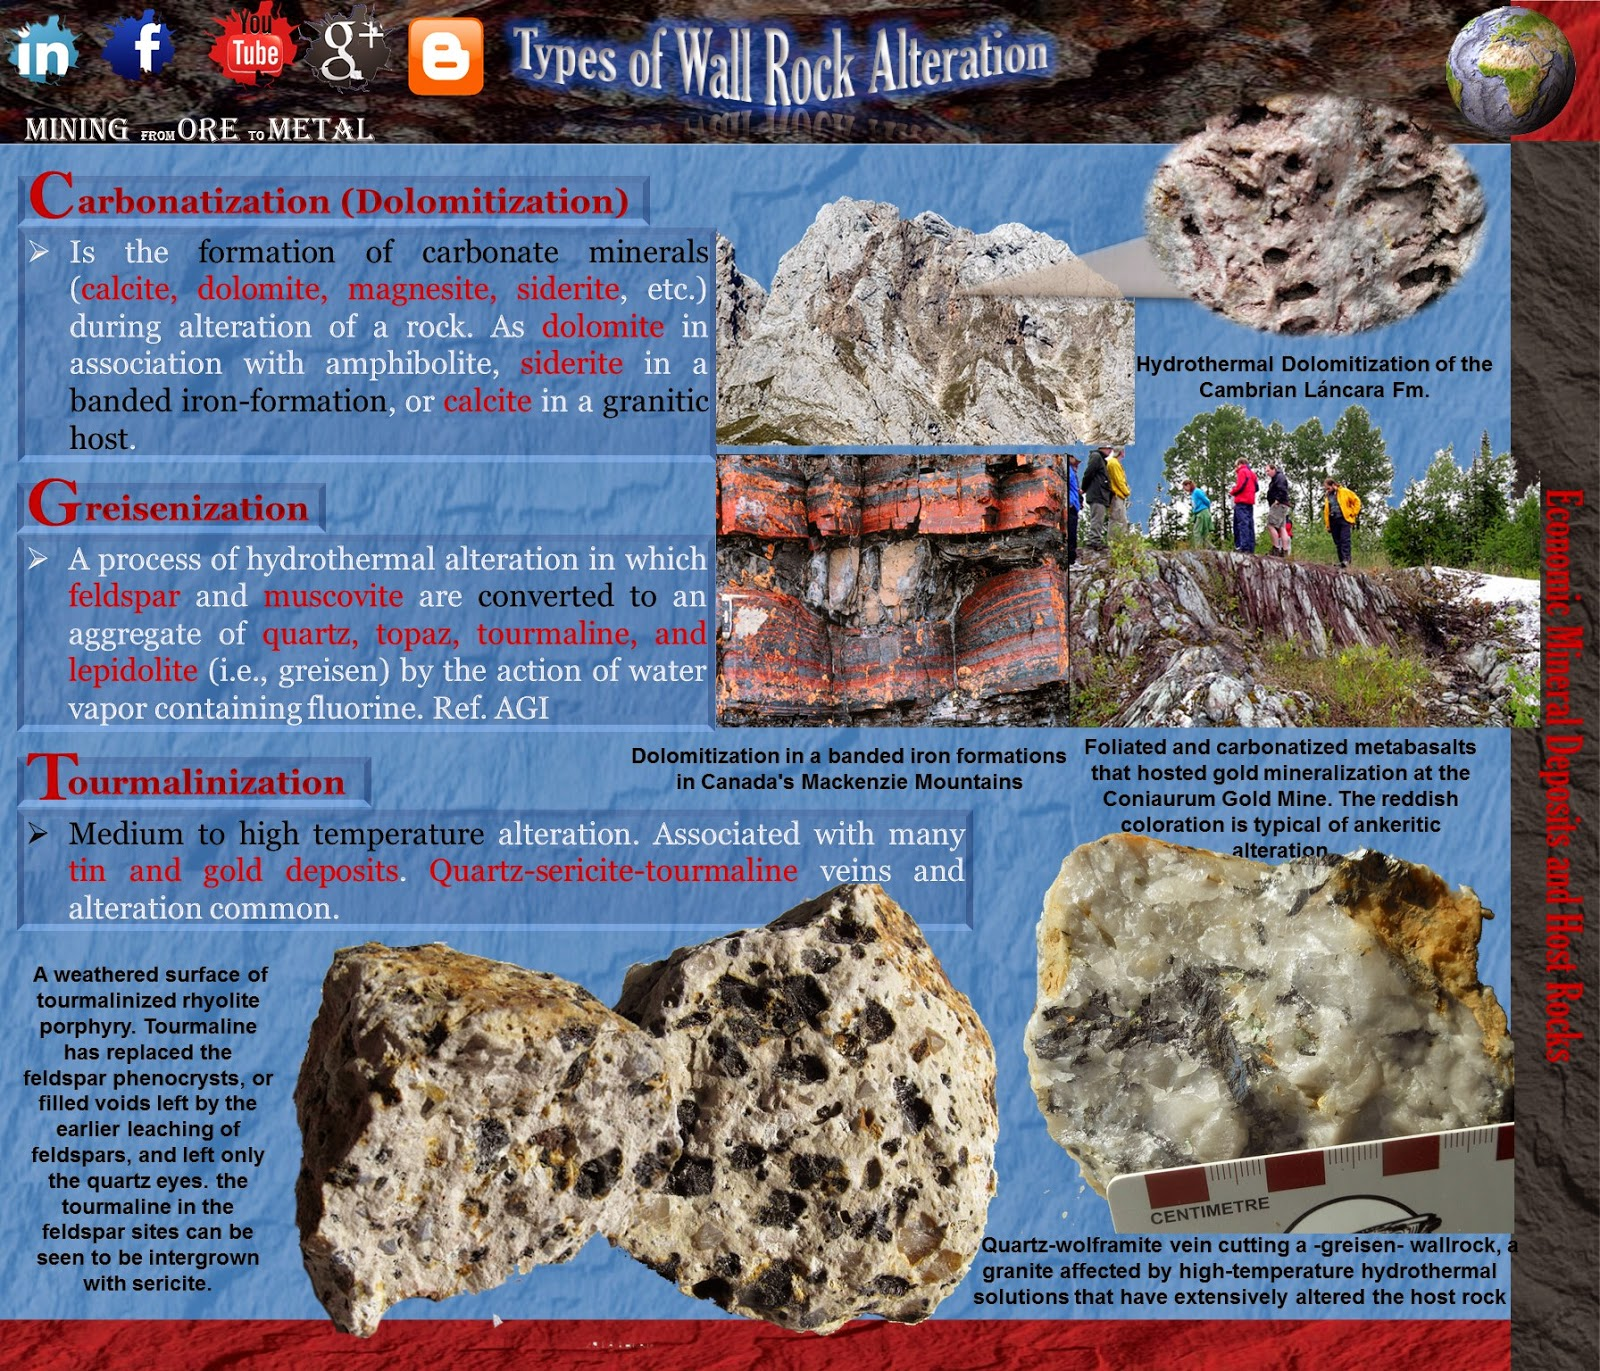 Types of Wall Rock Alteration